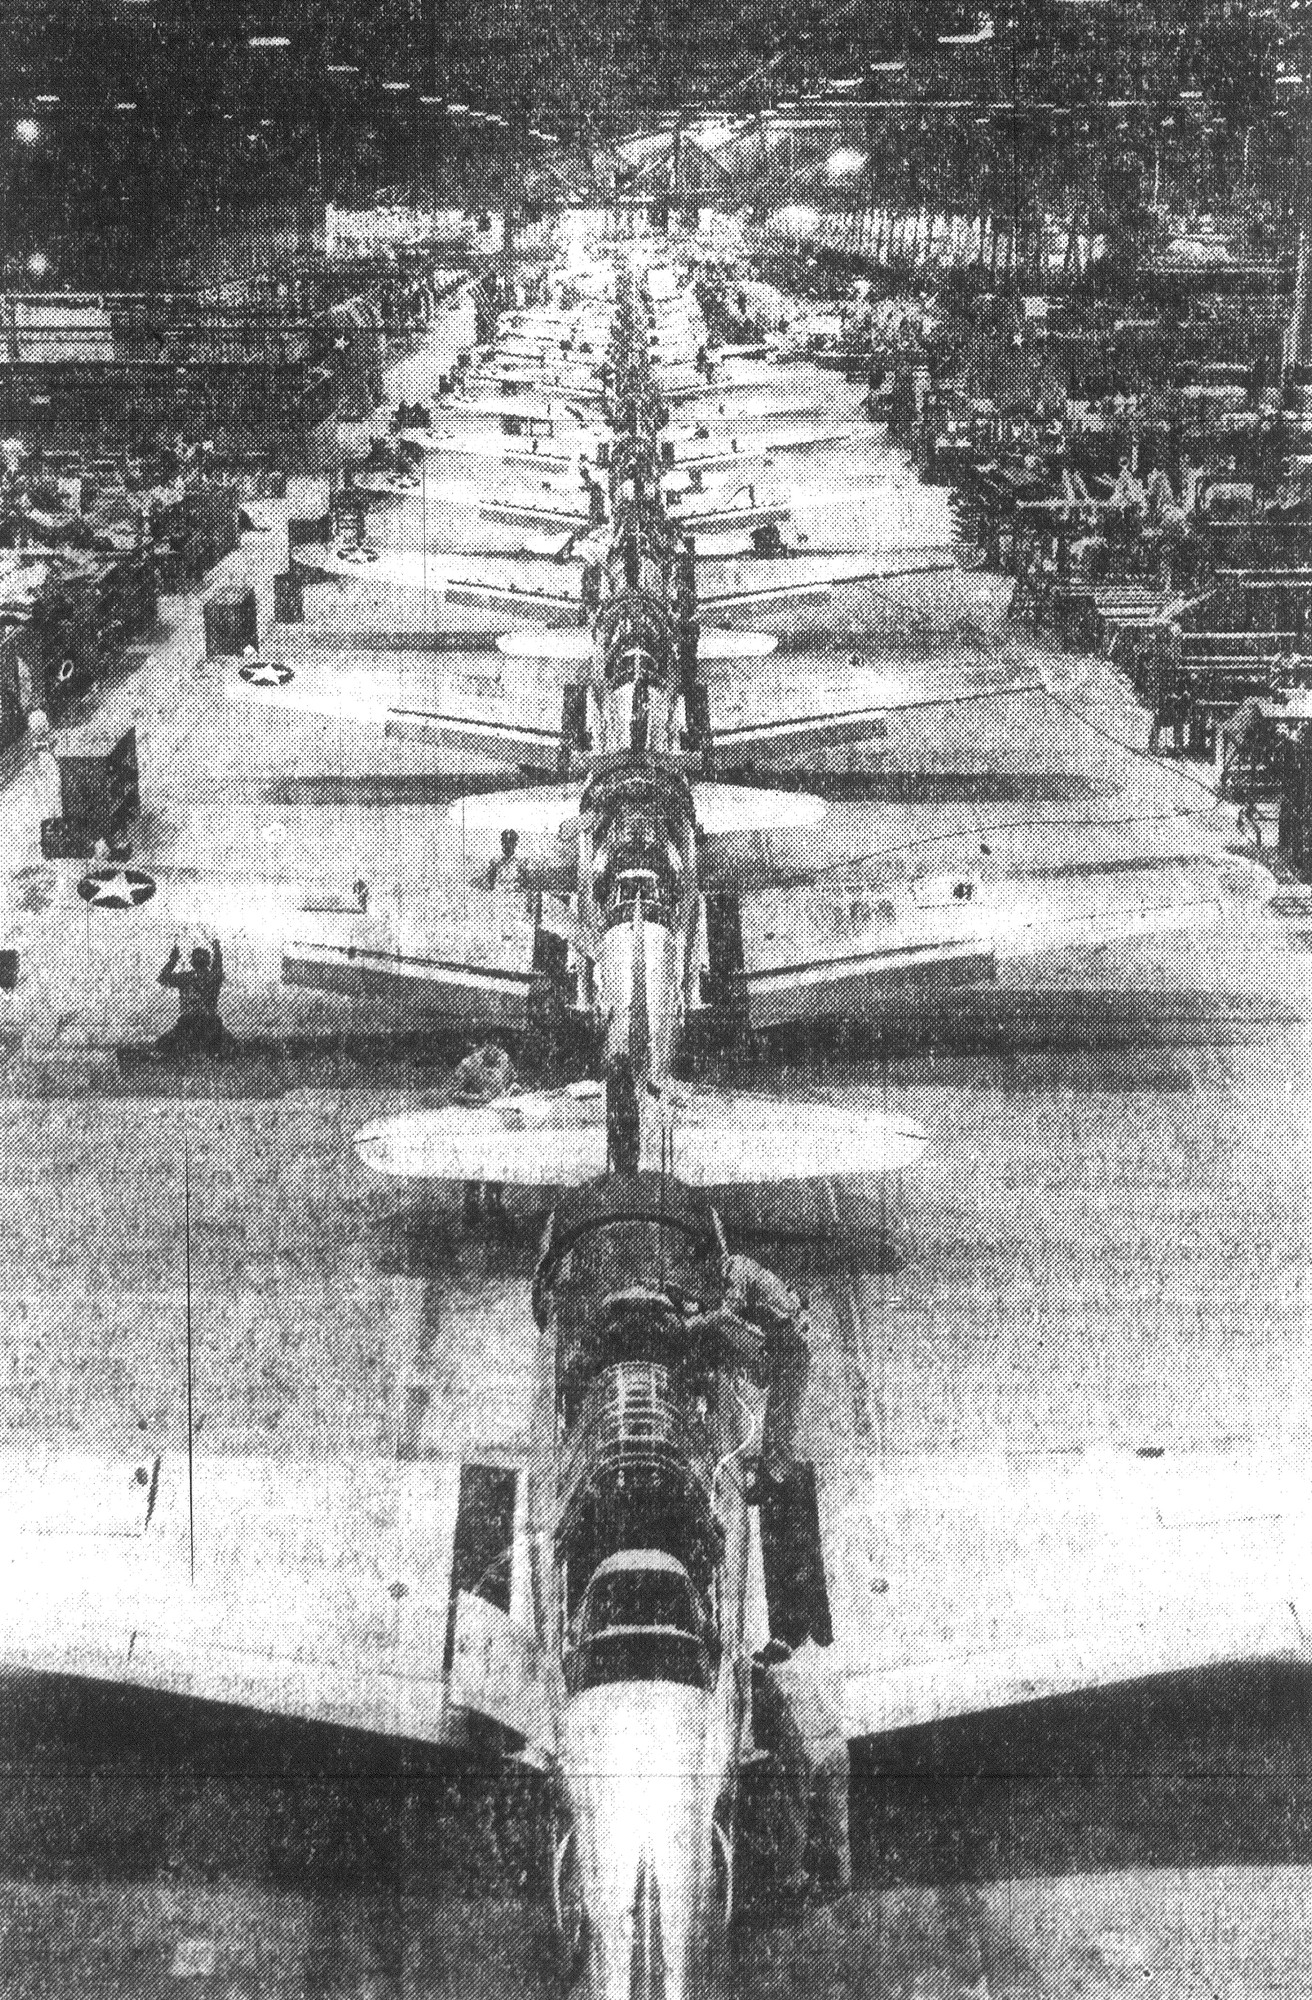 The production line at the Consolidated Vultee aircraft plant is seen in 1943 at Downey, California, where basic trainer planes like the ones used at Shaw Field were made. Sumter citizens helped to buy several of these planes by buying war bonds during the Lions Club drive.